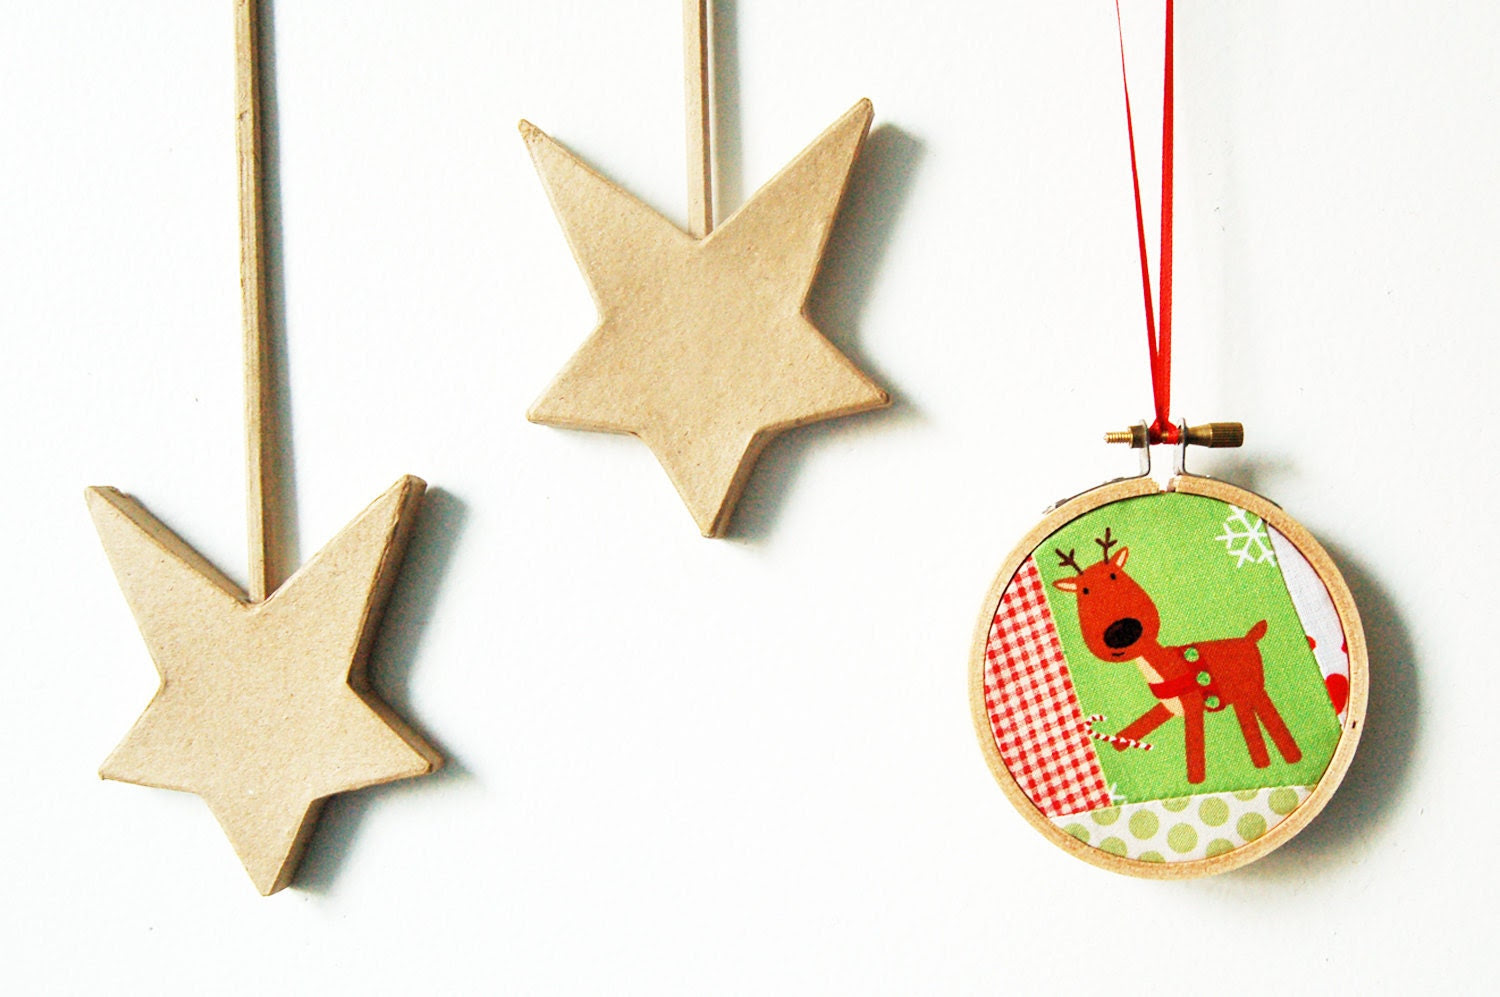 Reindeer with Candy Cane Christmas Fabric Ornament. Patchwork Fabric Hoop. By merriweathercouncil on Etsy.